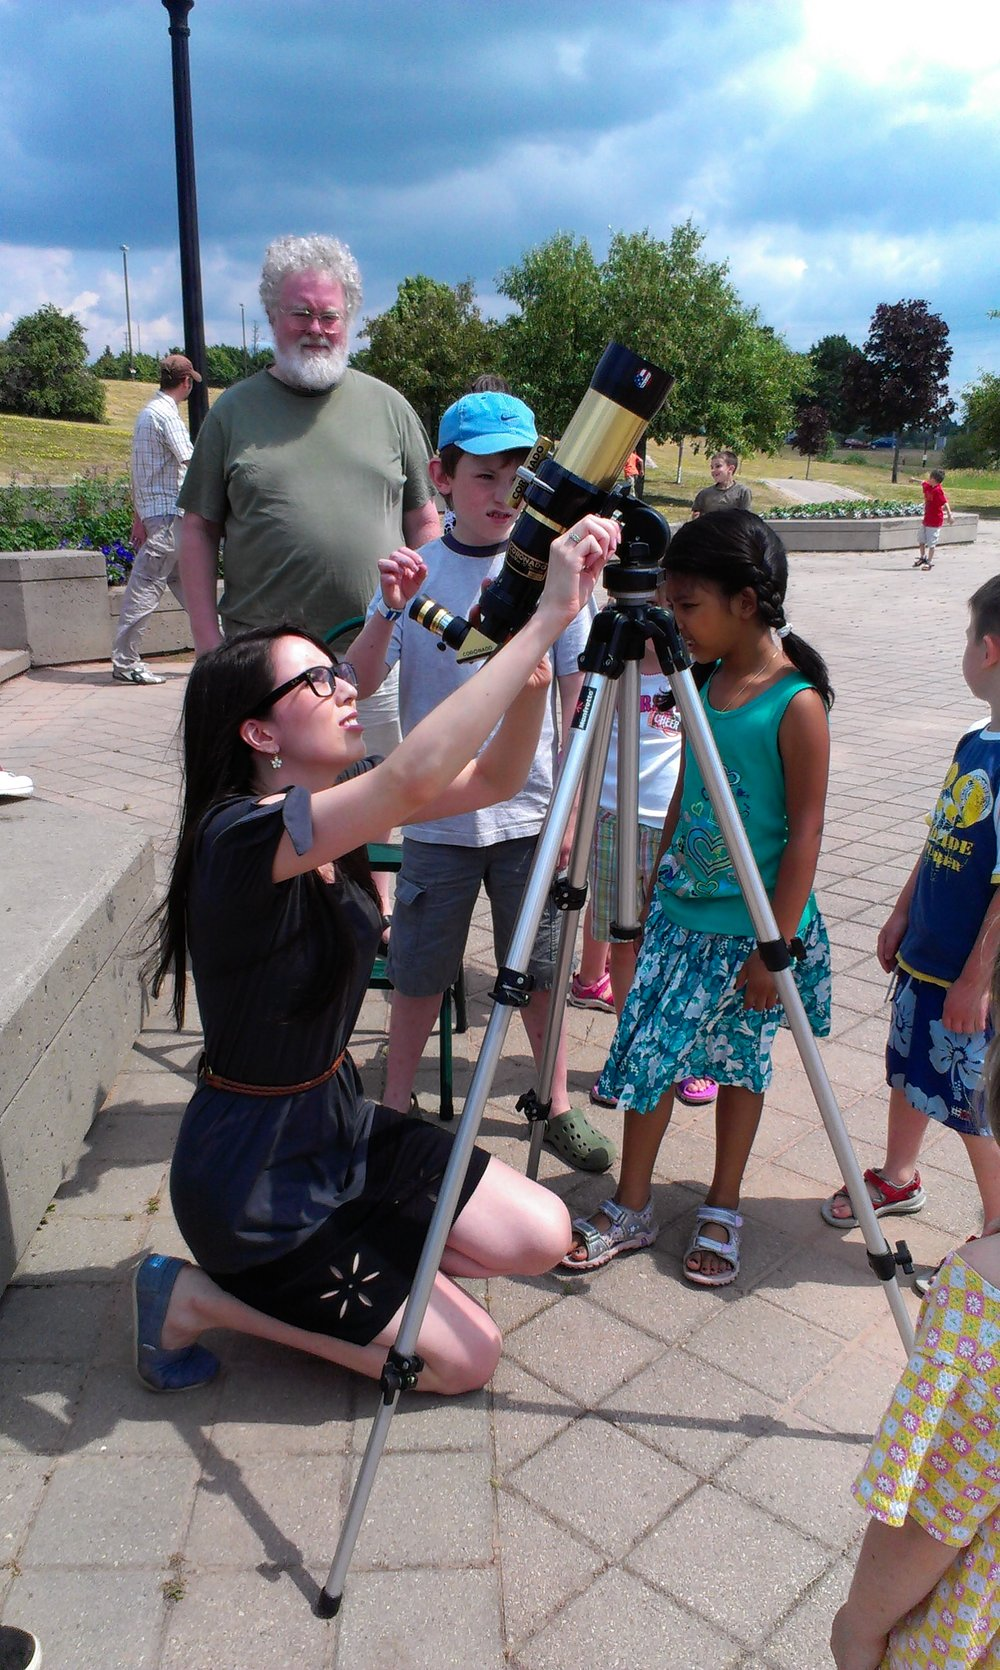 Solar observing with day campers during an astronomy day at the Kingston Frontenac Public Library.